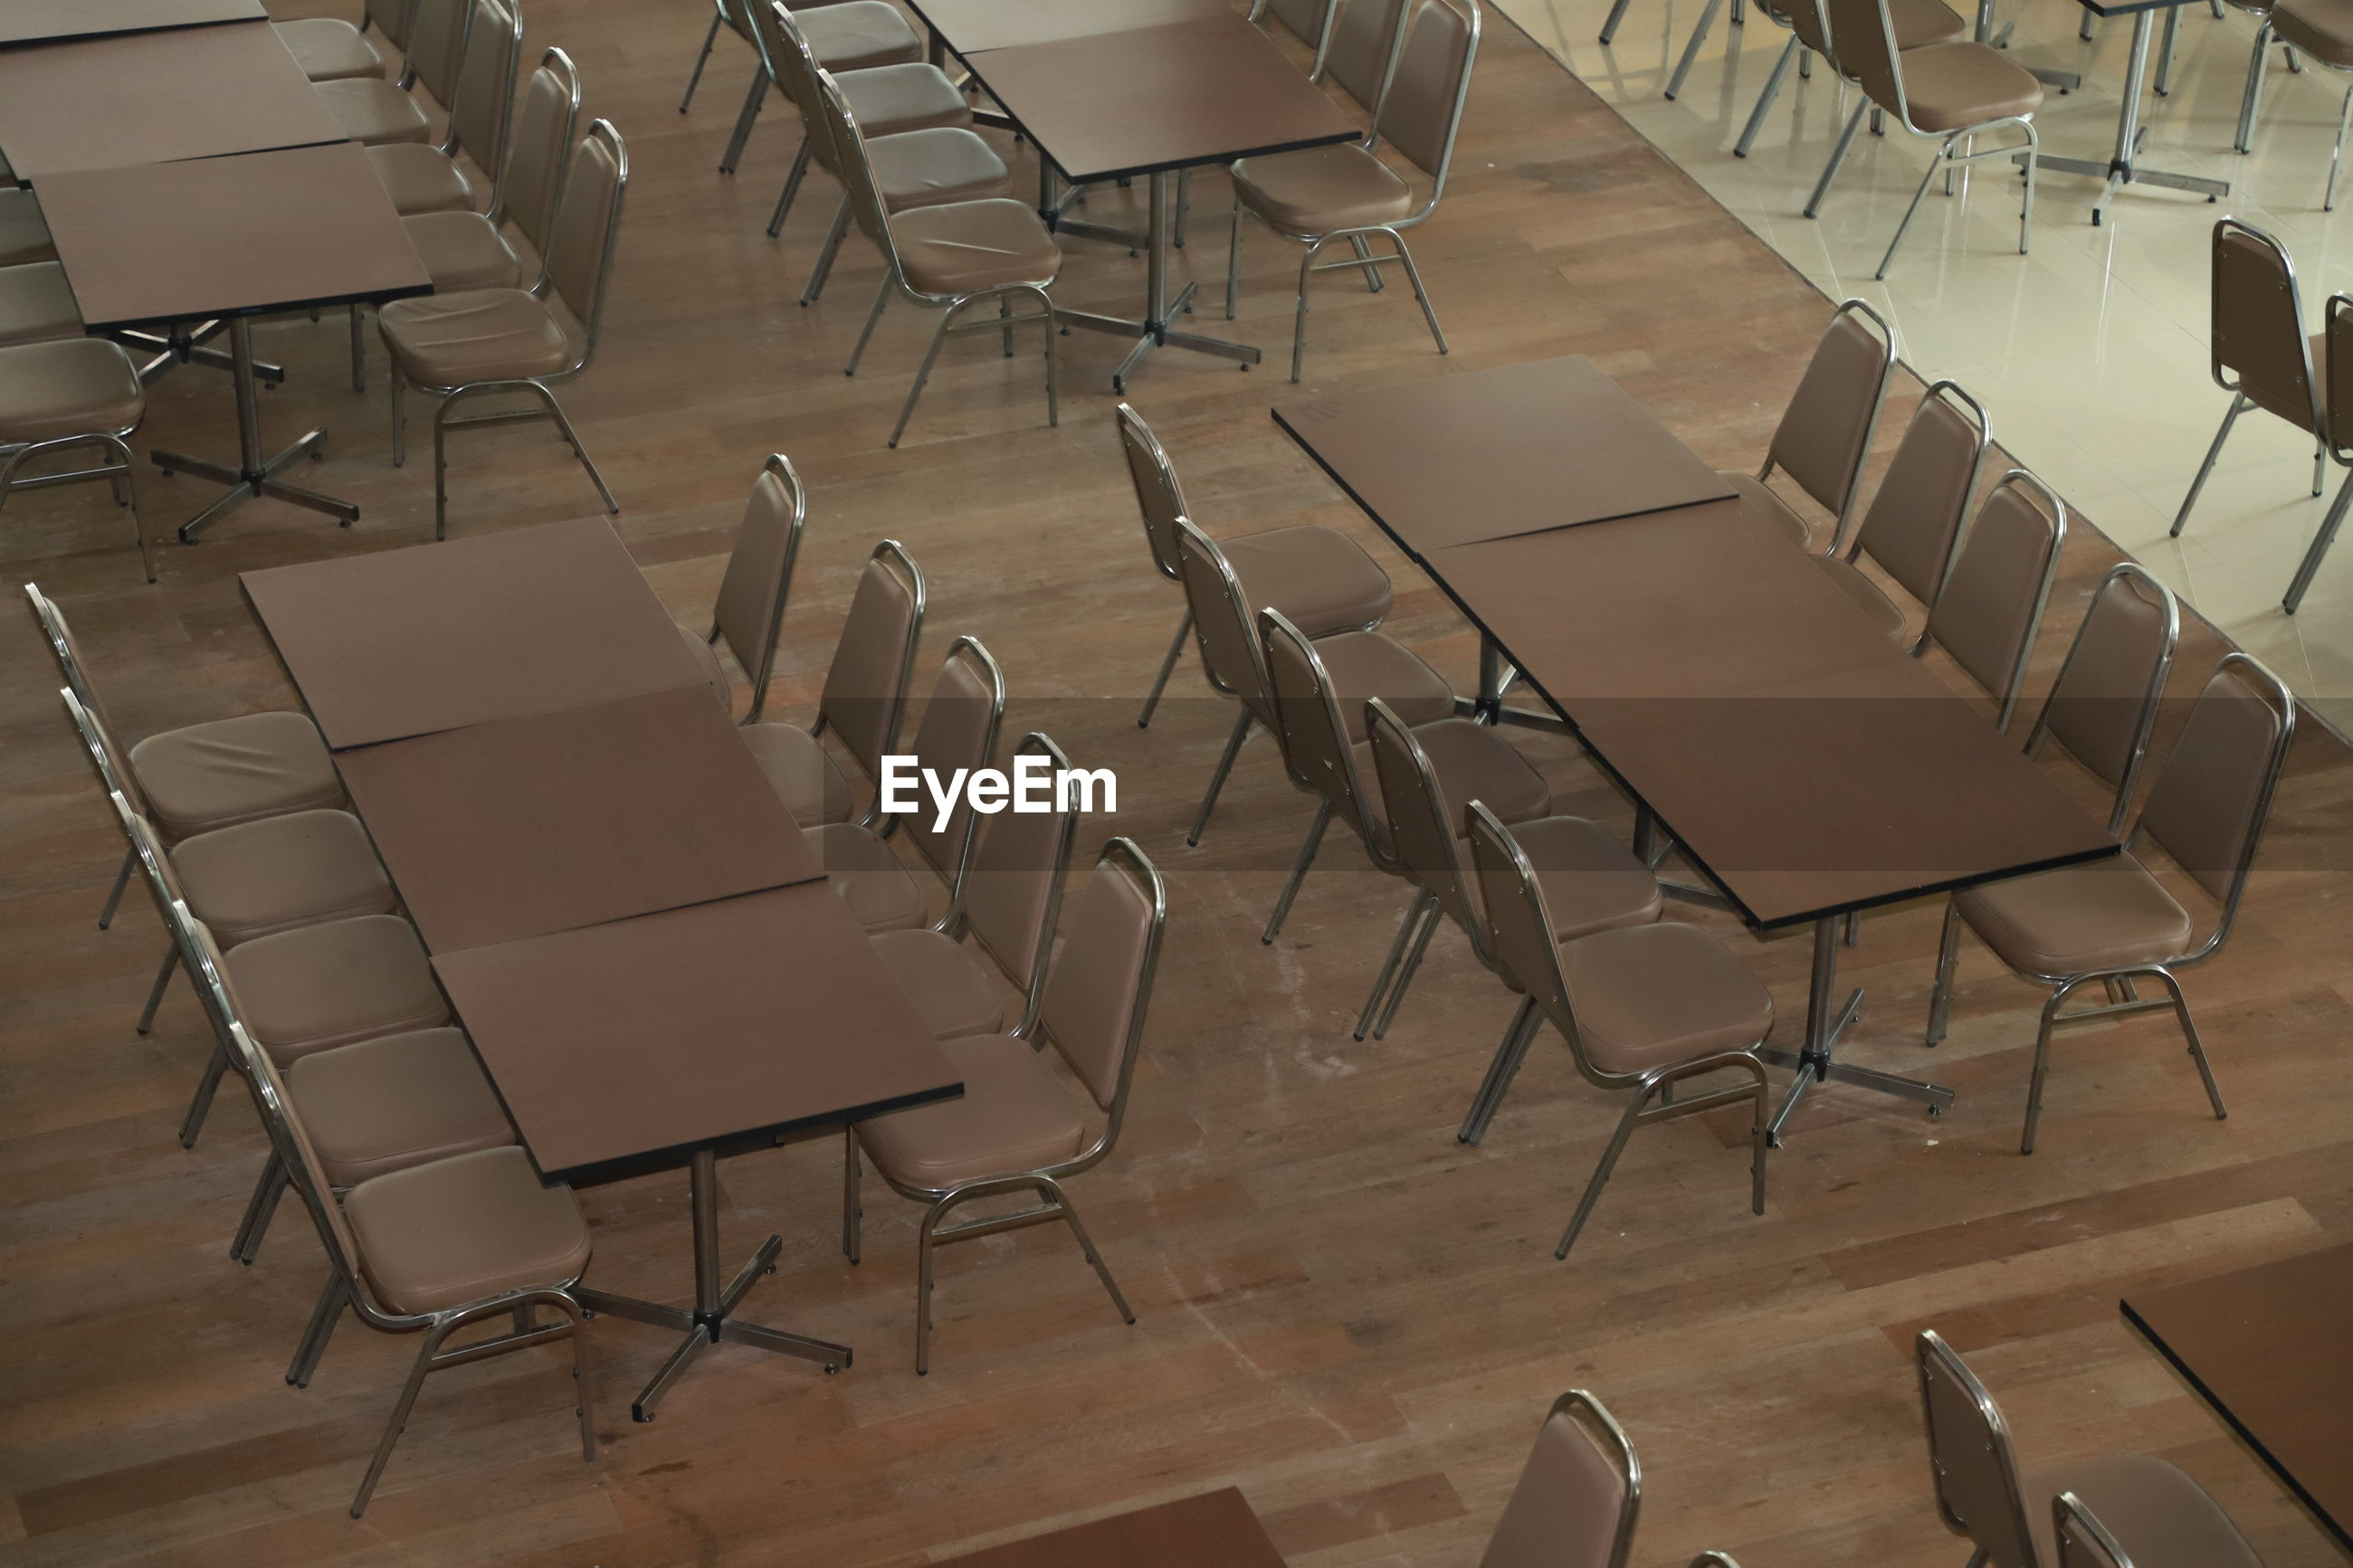 High angle view of empty chairs and tables arranged on hardwood floor